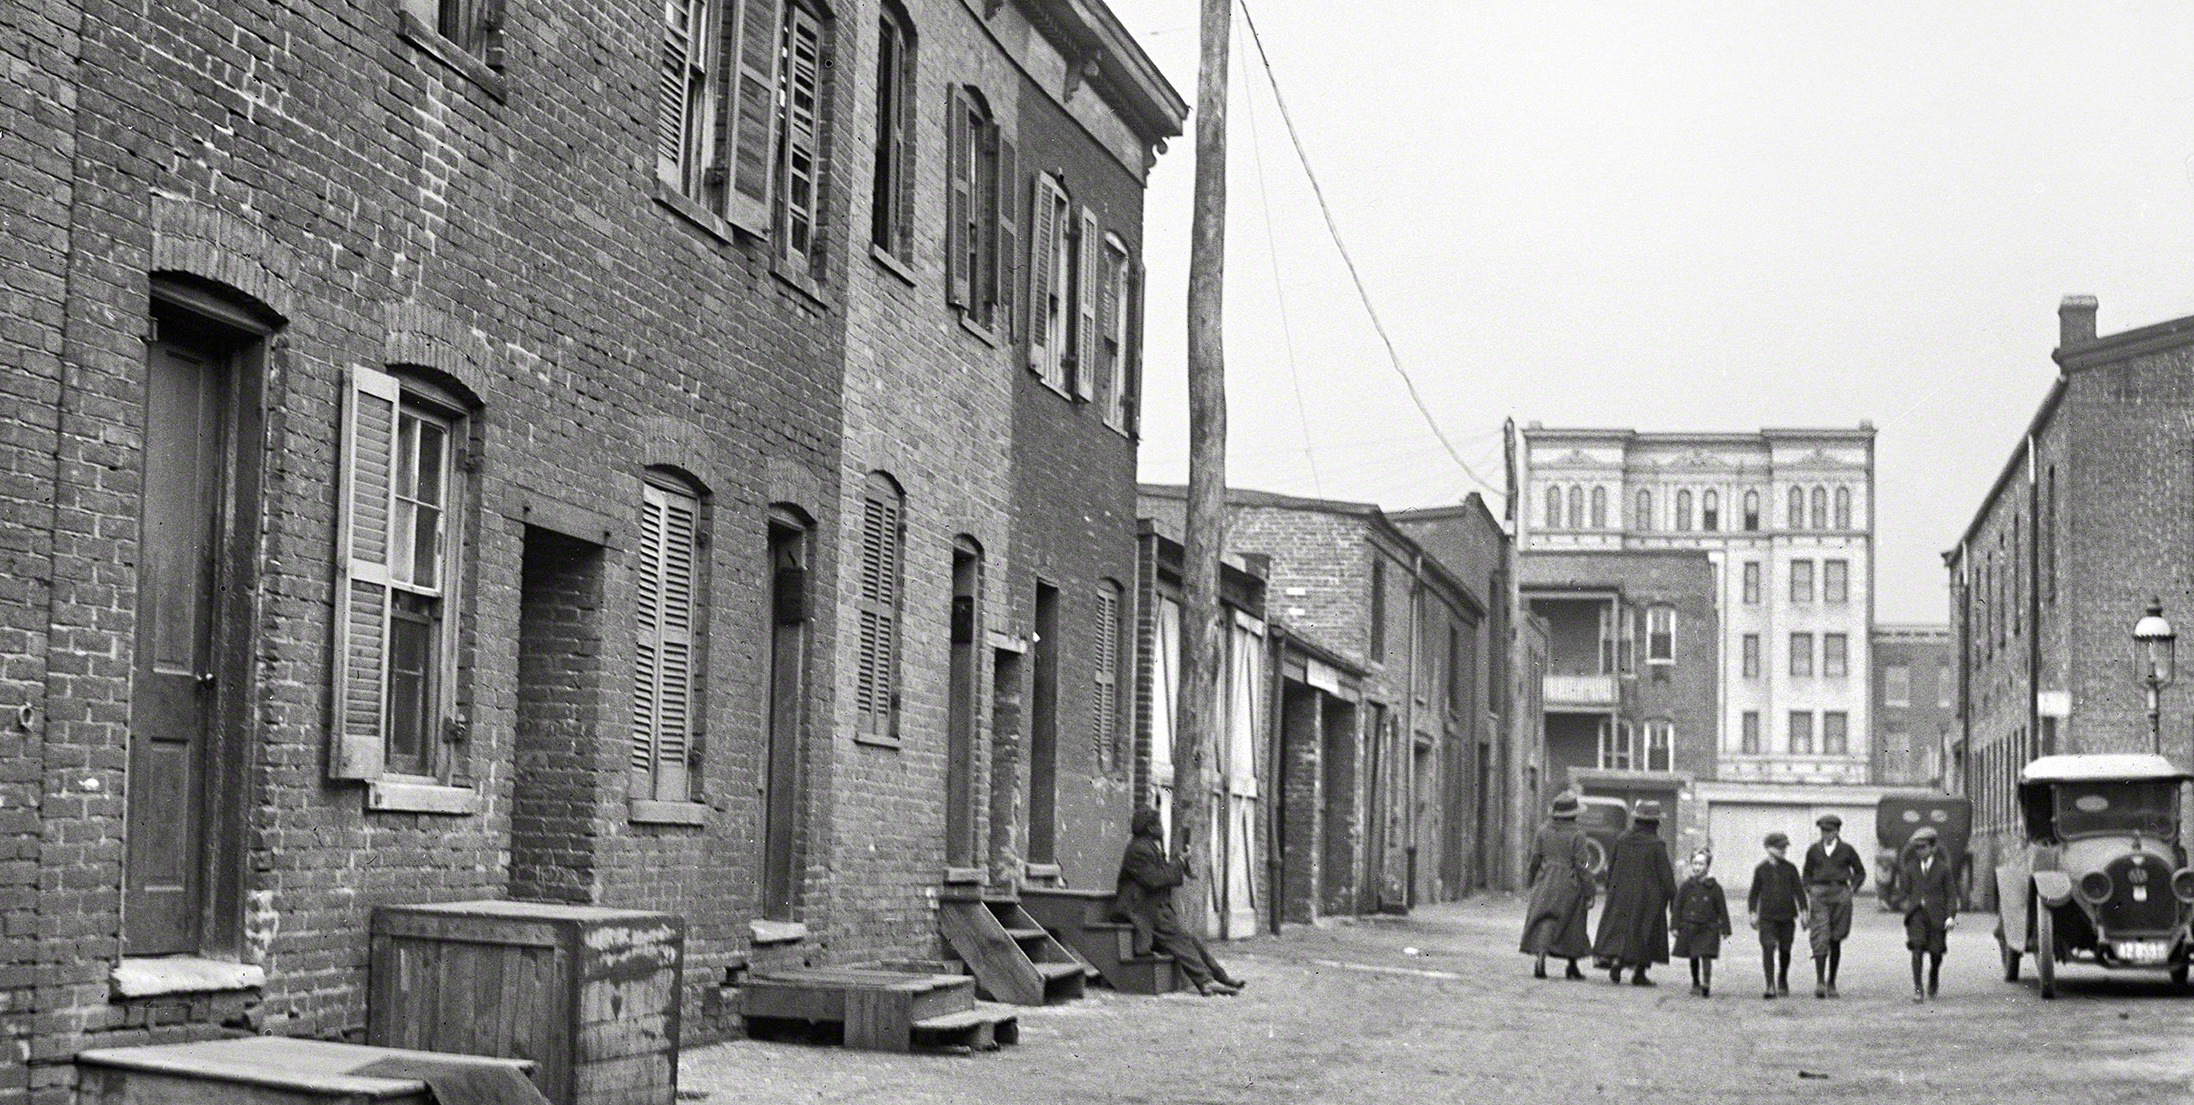 Blagden Alley, 1923, Courtesy of Shorpy.com